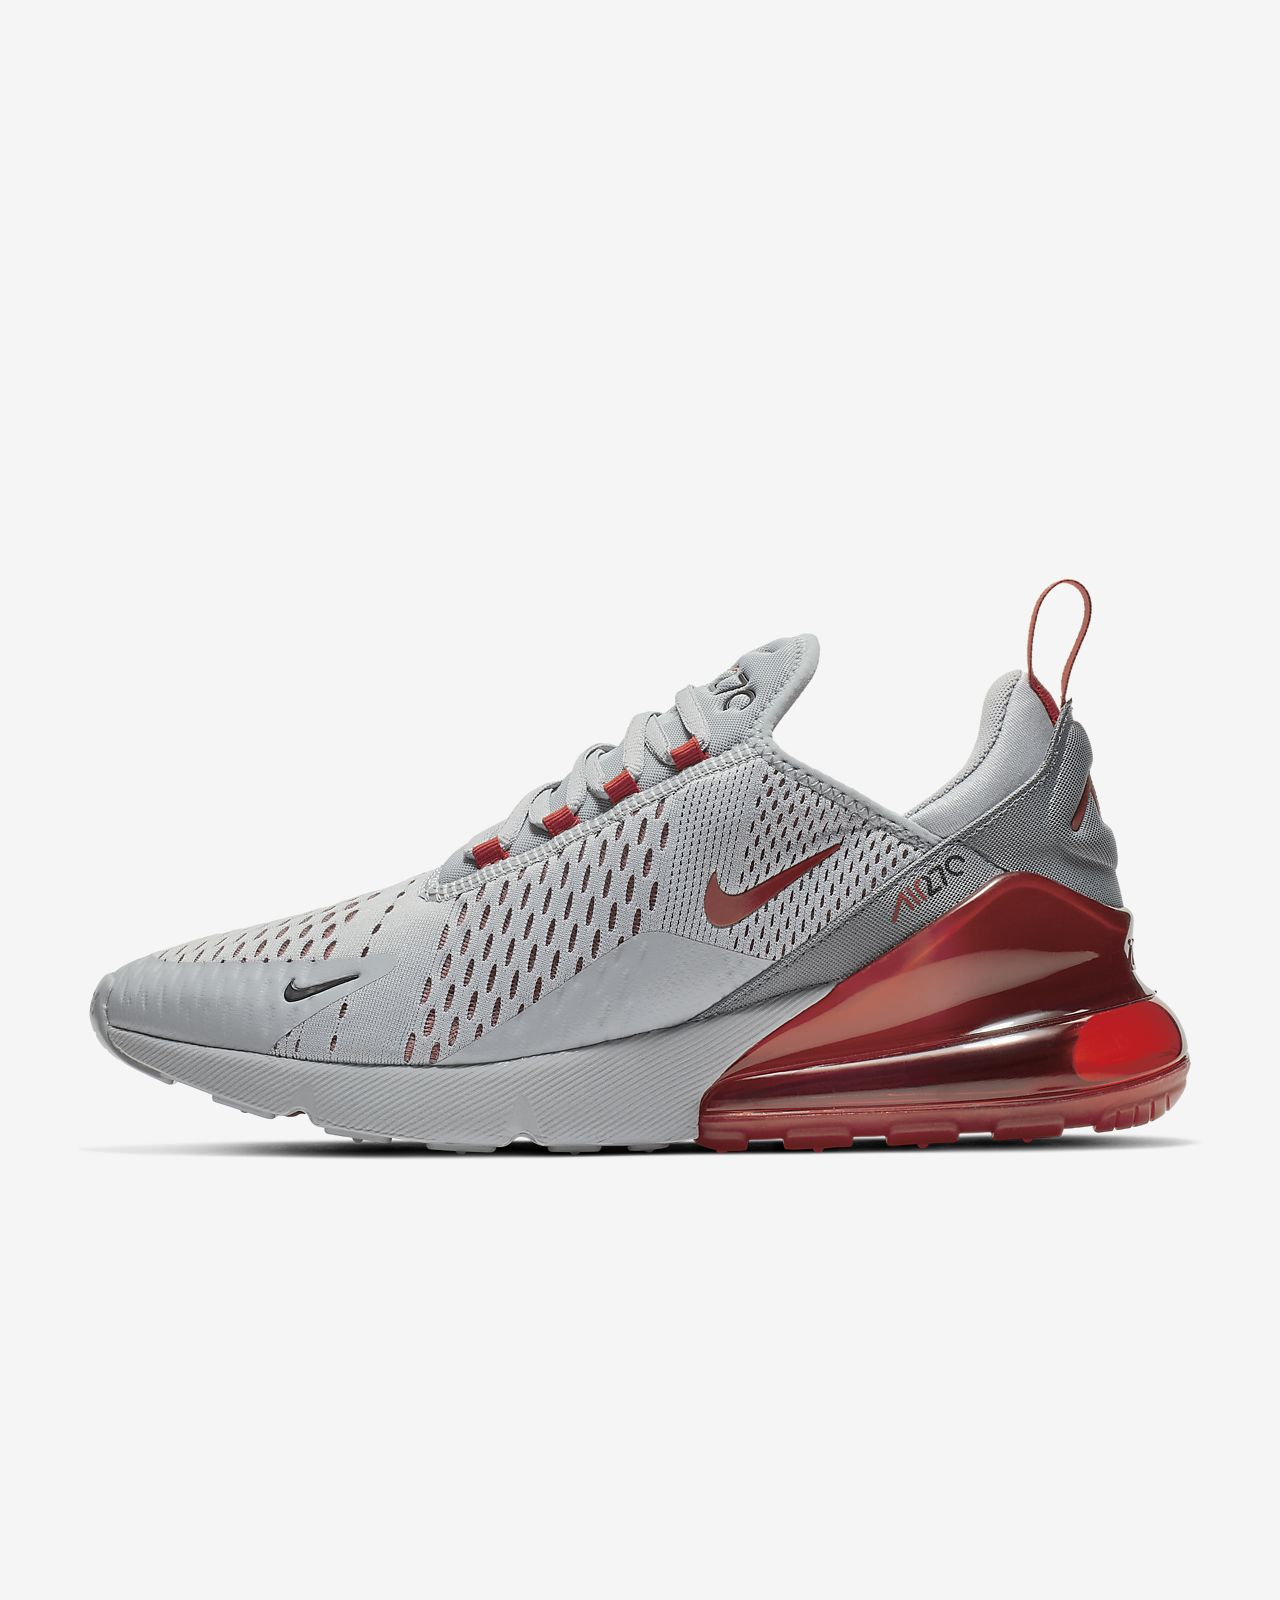 meet 979f5 96294 Men s Shoe. Nike Air Max 270